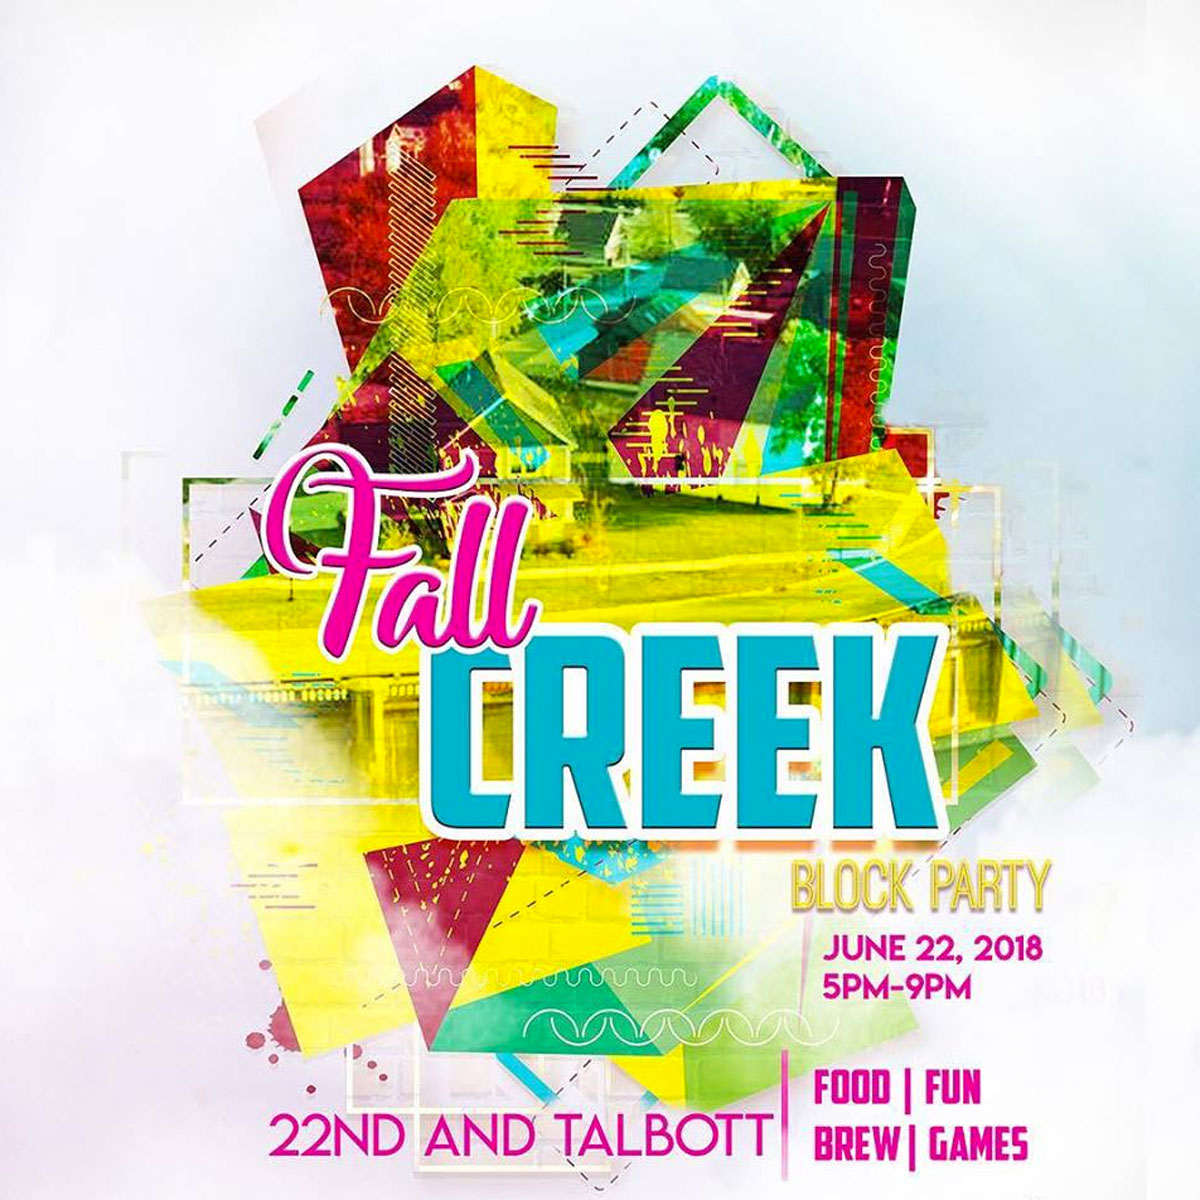 FallCreek Block Party